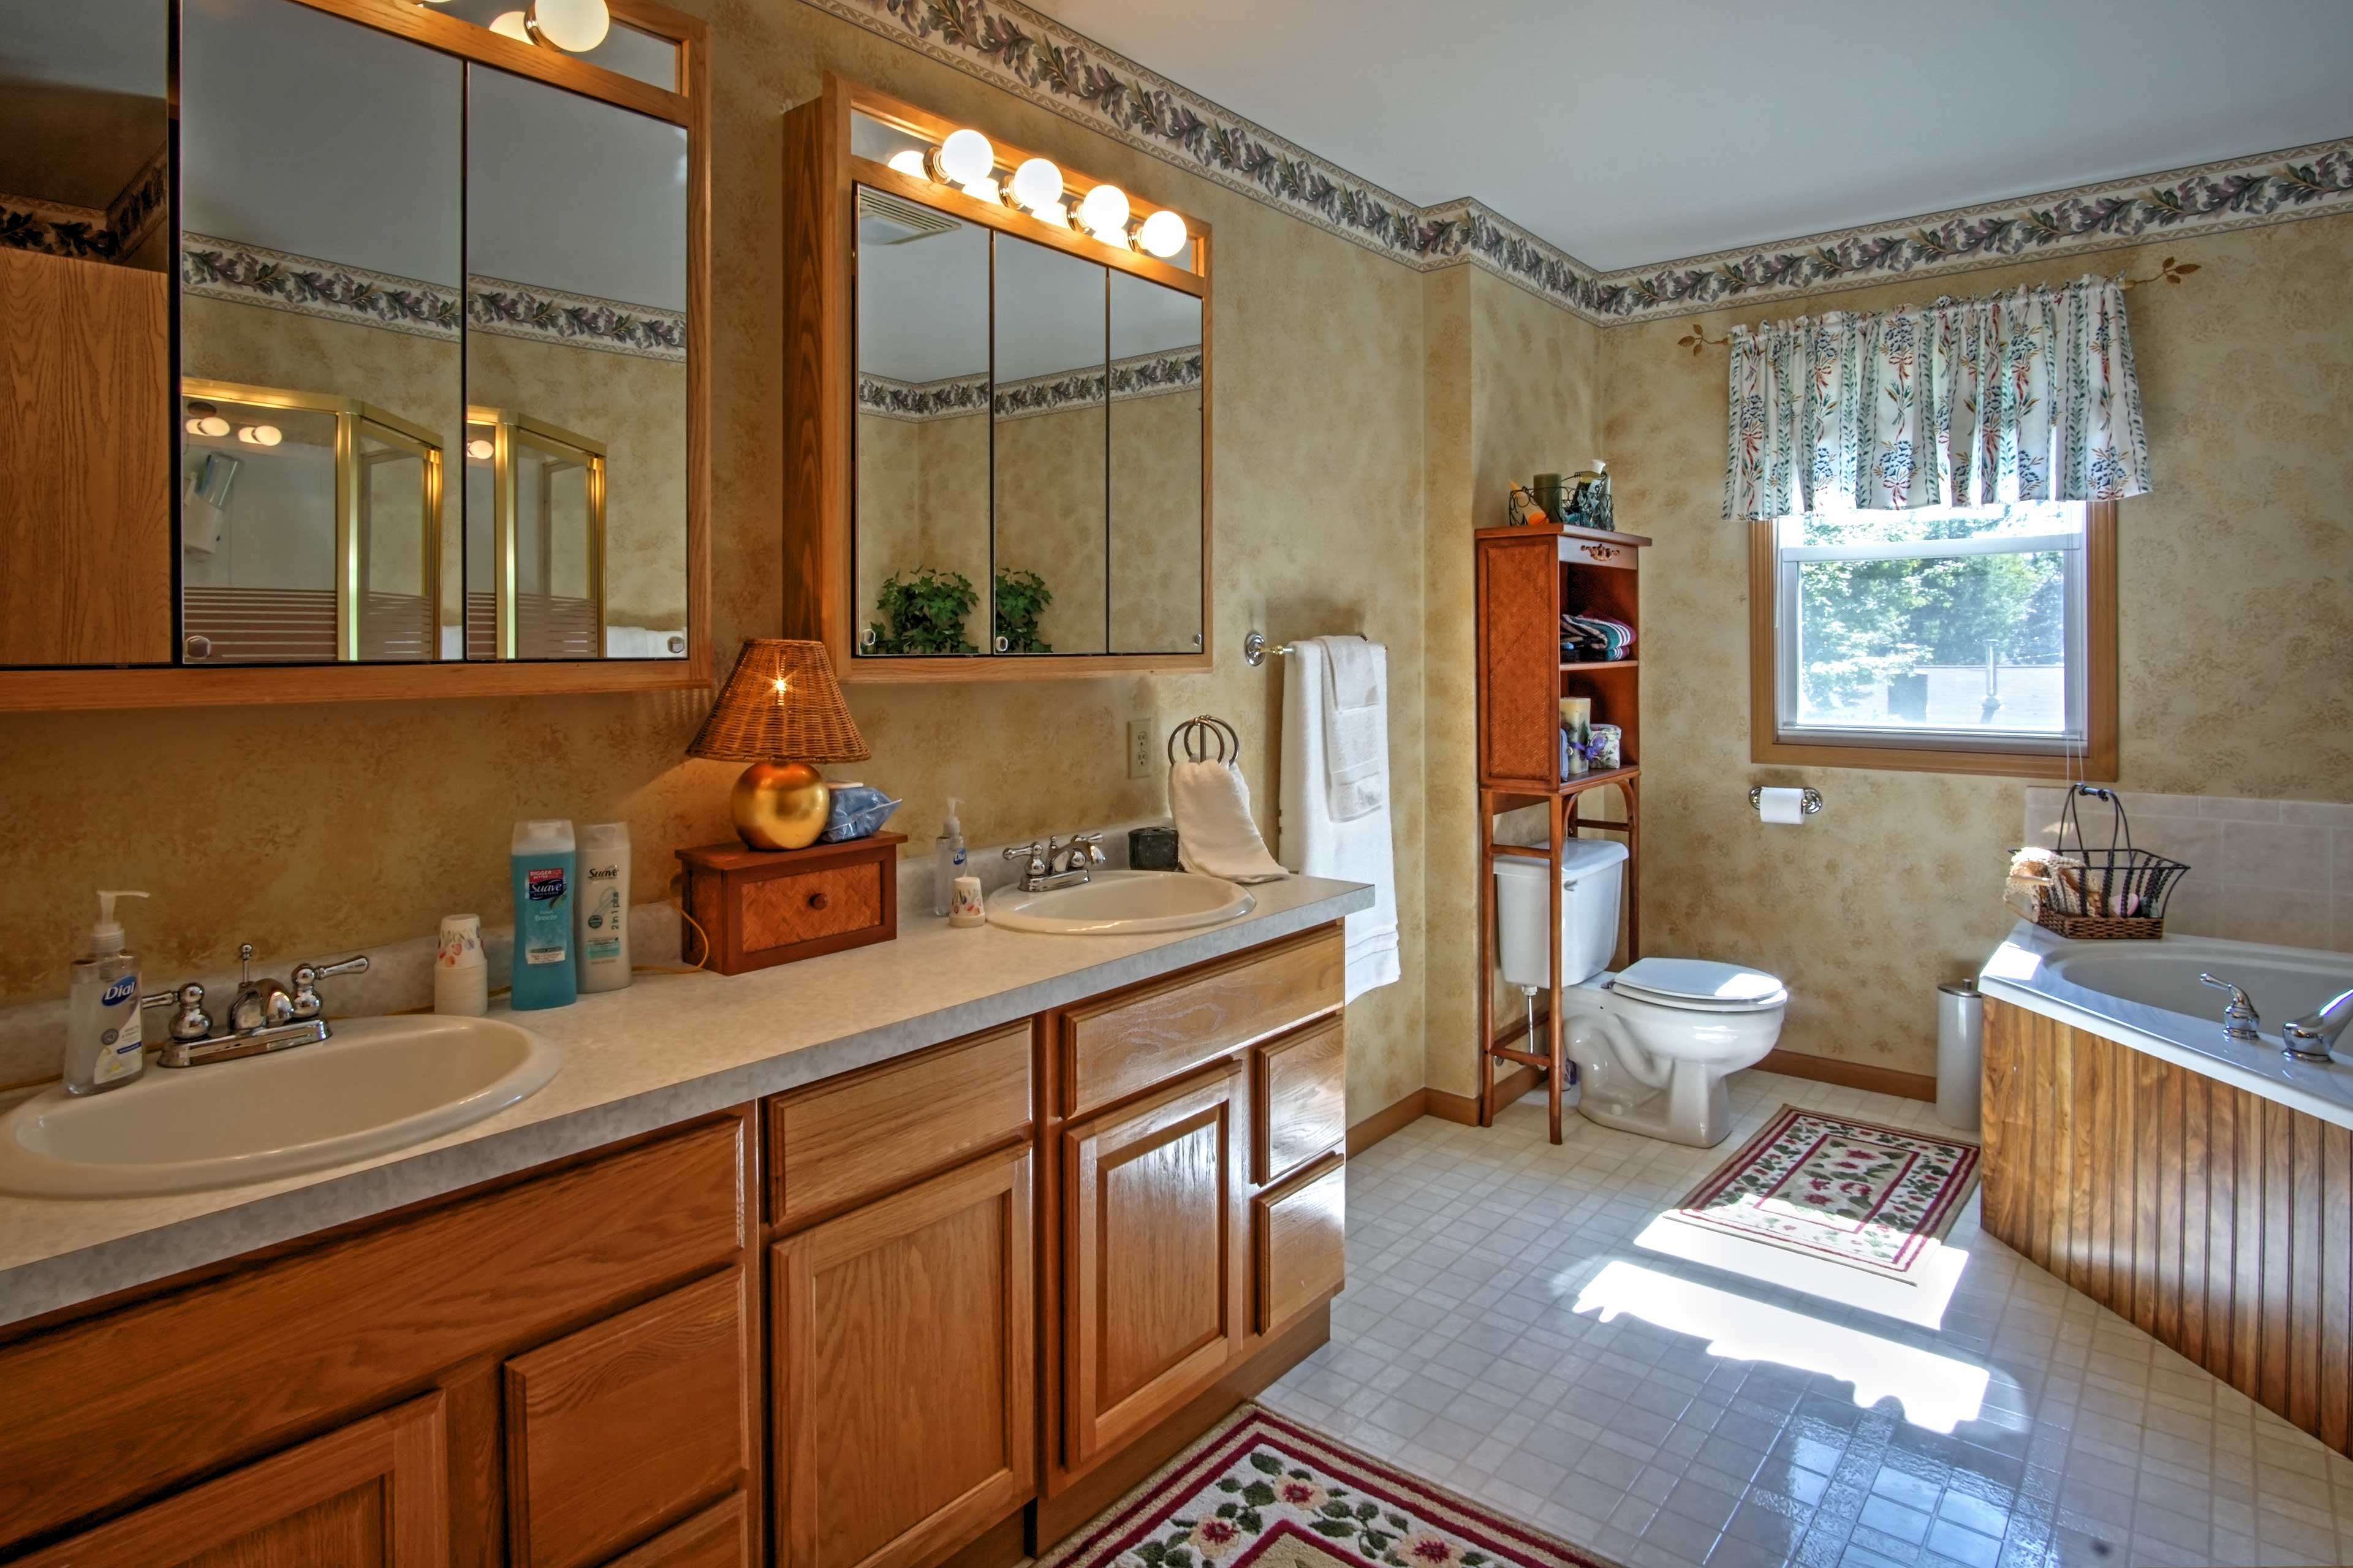 You can look forward to getting ready in this spacious en-suite bathroom.